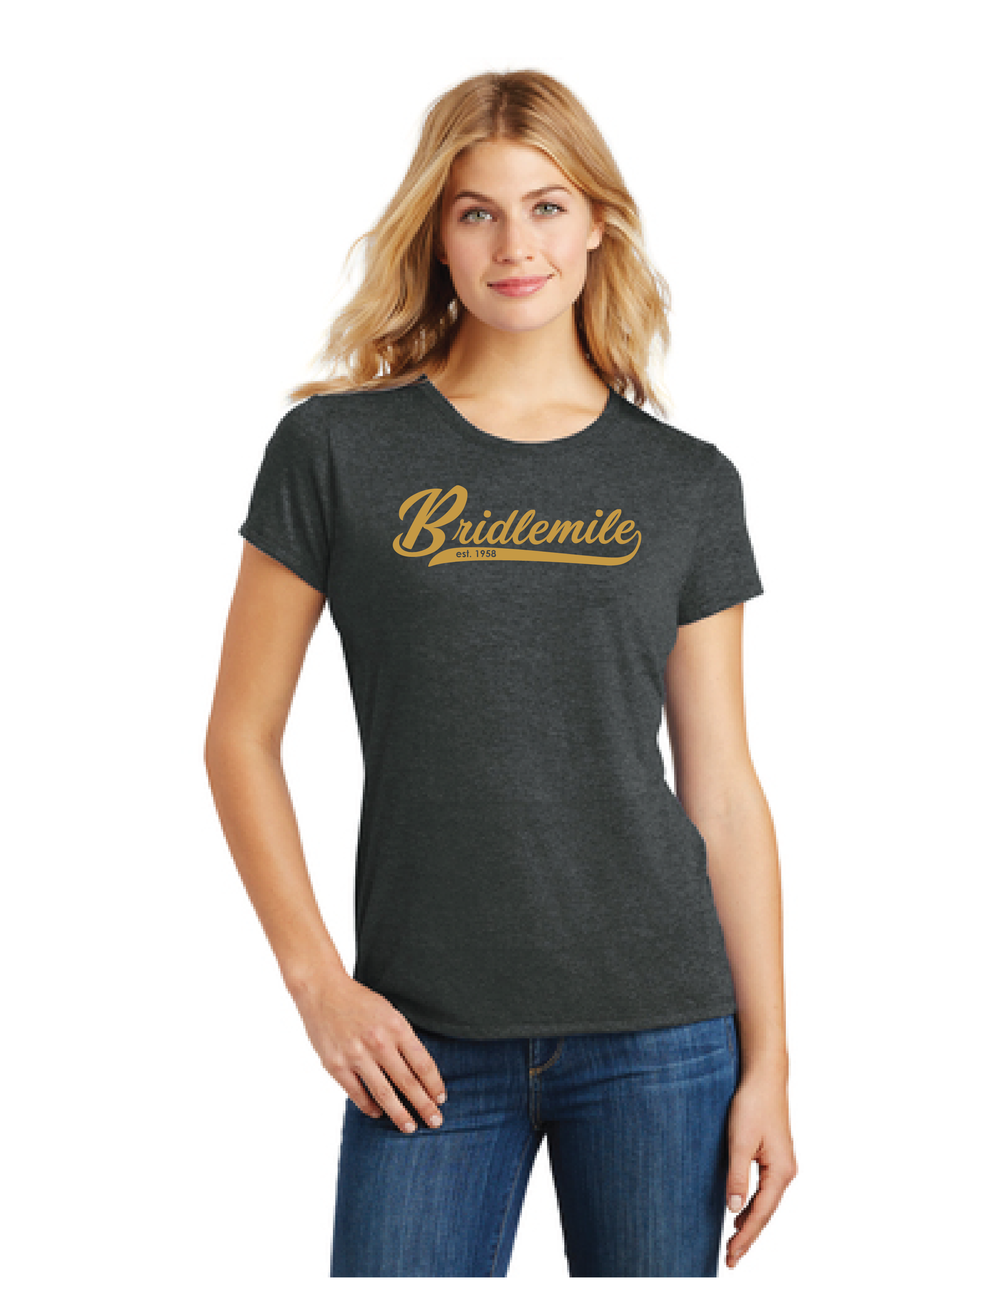 Bridlemile 60th Anniversary Designs_60th Tee Womens.png